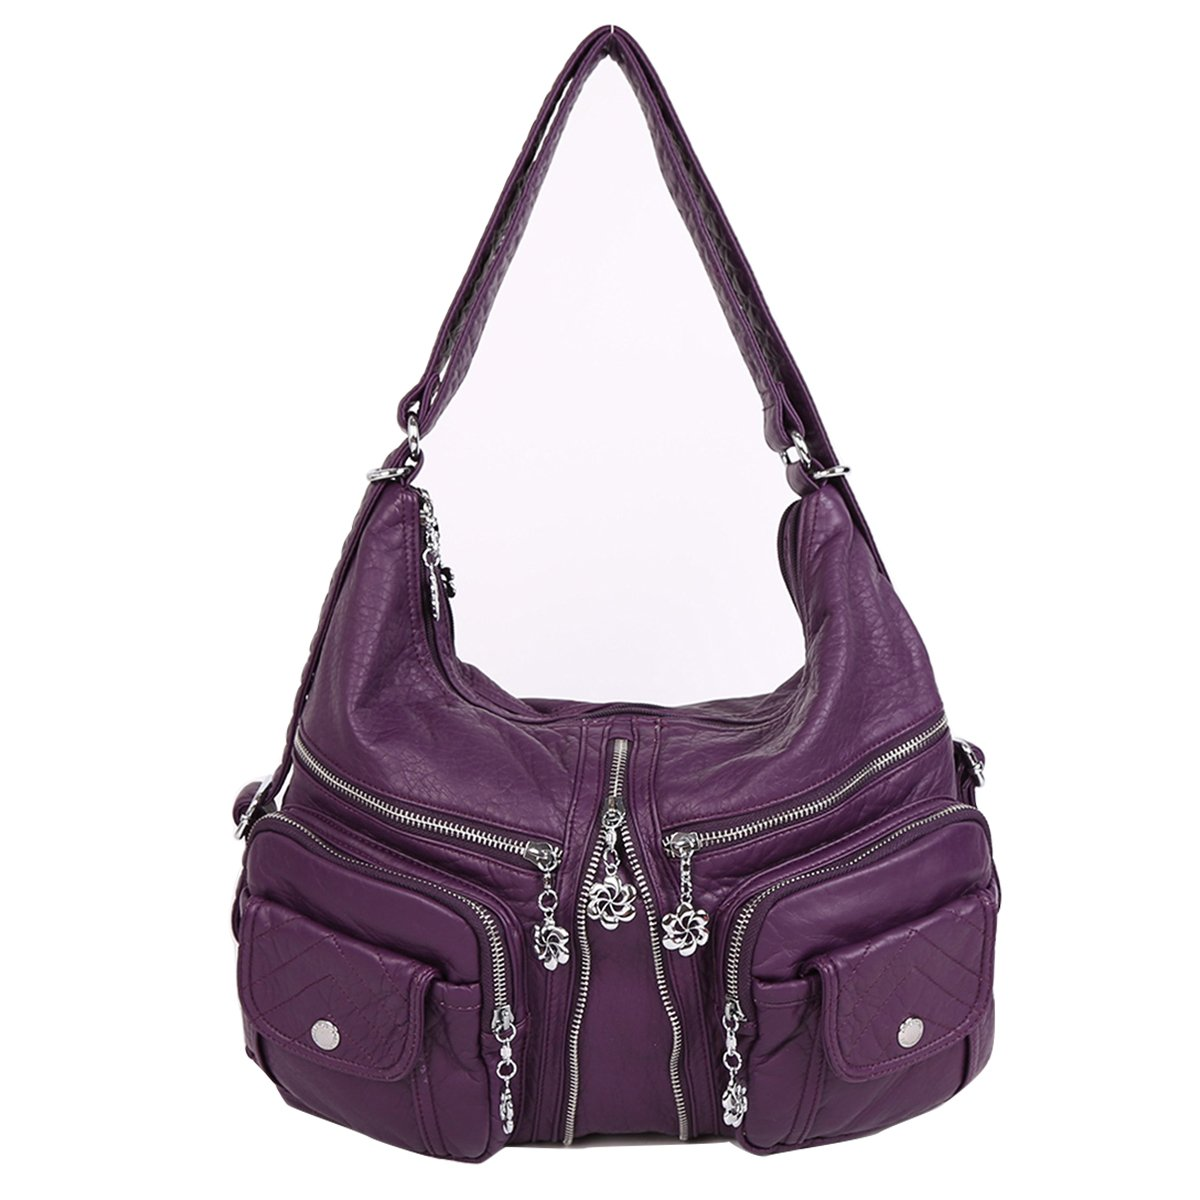 Angelkiss 2 Top Zippers Multi Pockets Handbags Washed Leather Purses Shoulder Bags Backpack AK678 (Purple)